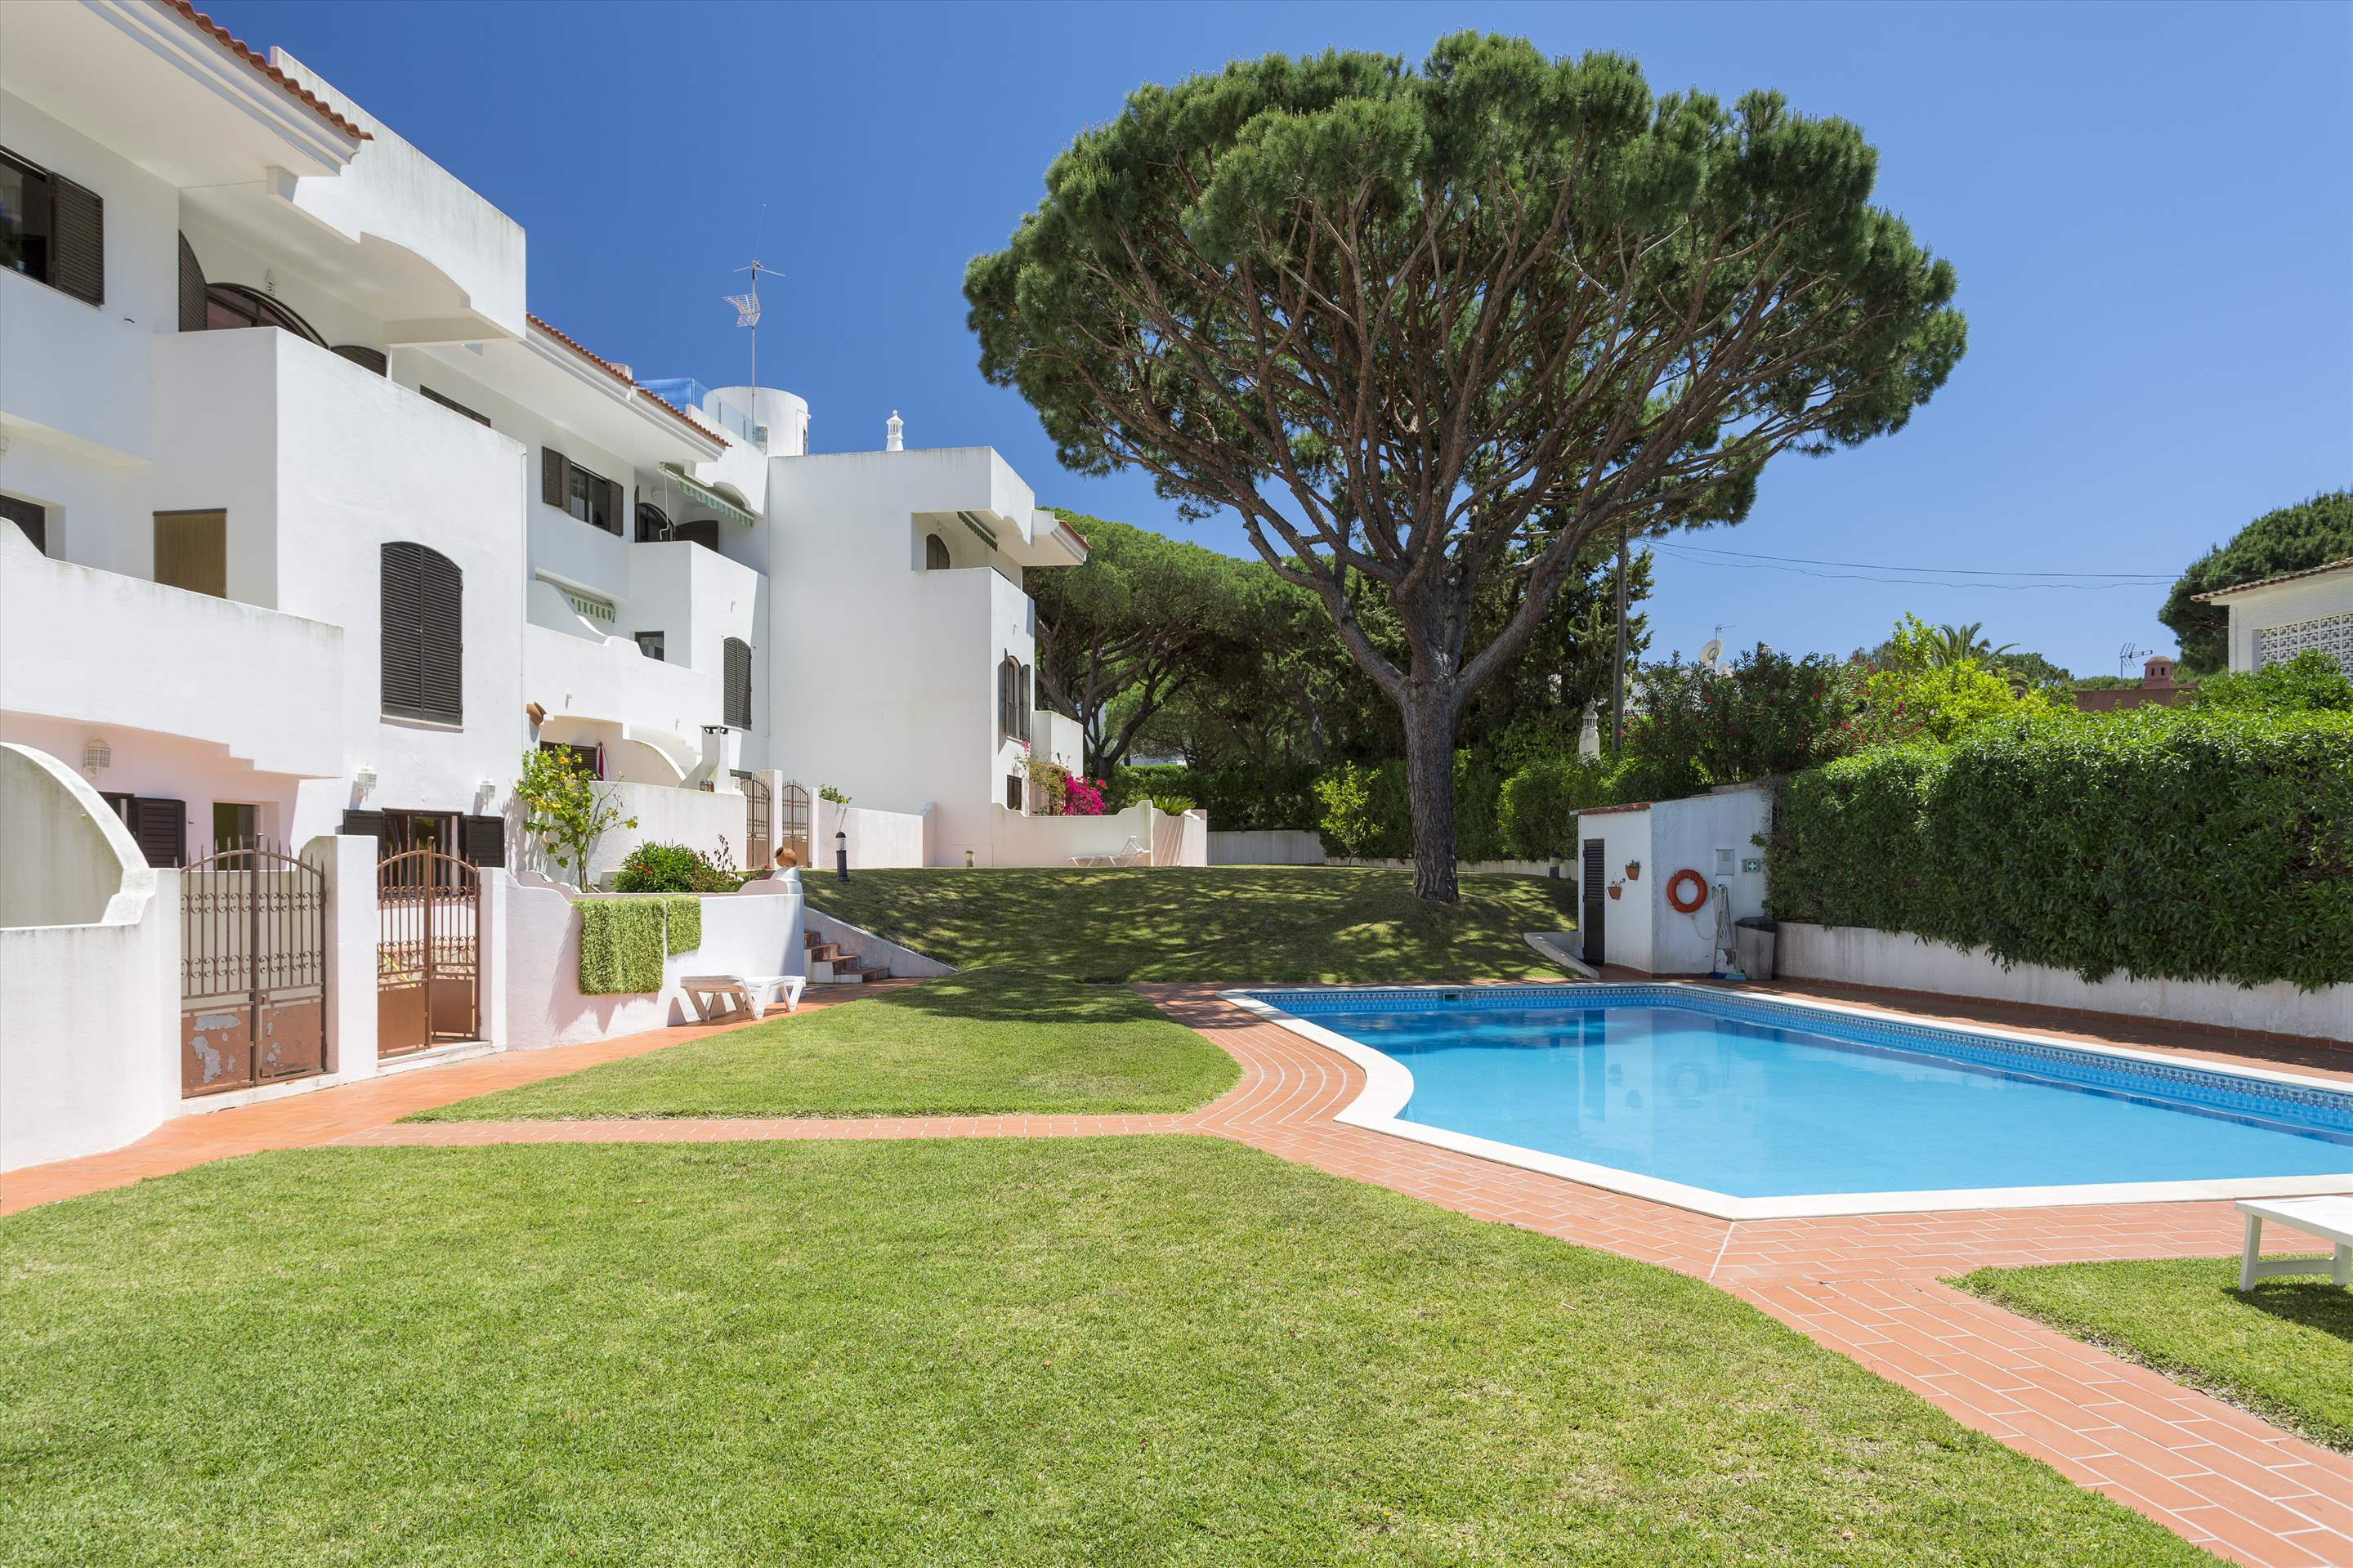 Apartment Jardim do Mar, 2 bedroom apartment in Vilamoura Area, Algarve Photo #7